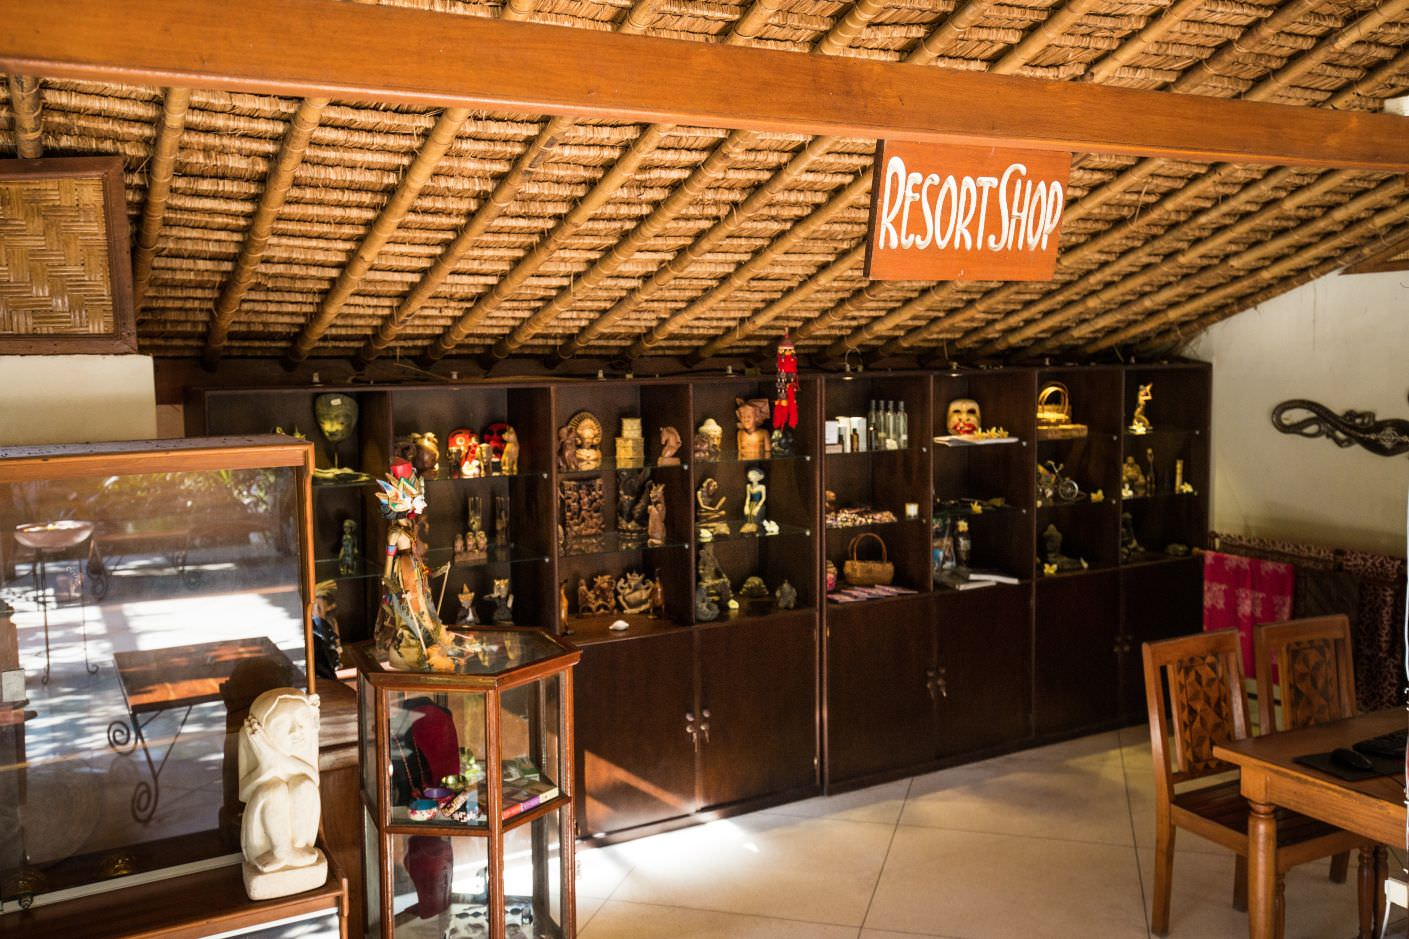 Karma Royal Candidasa Resort Shop